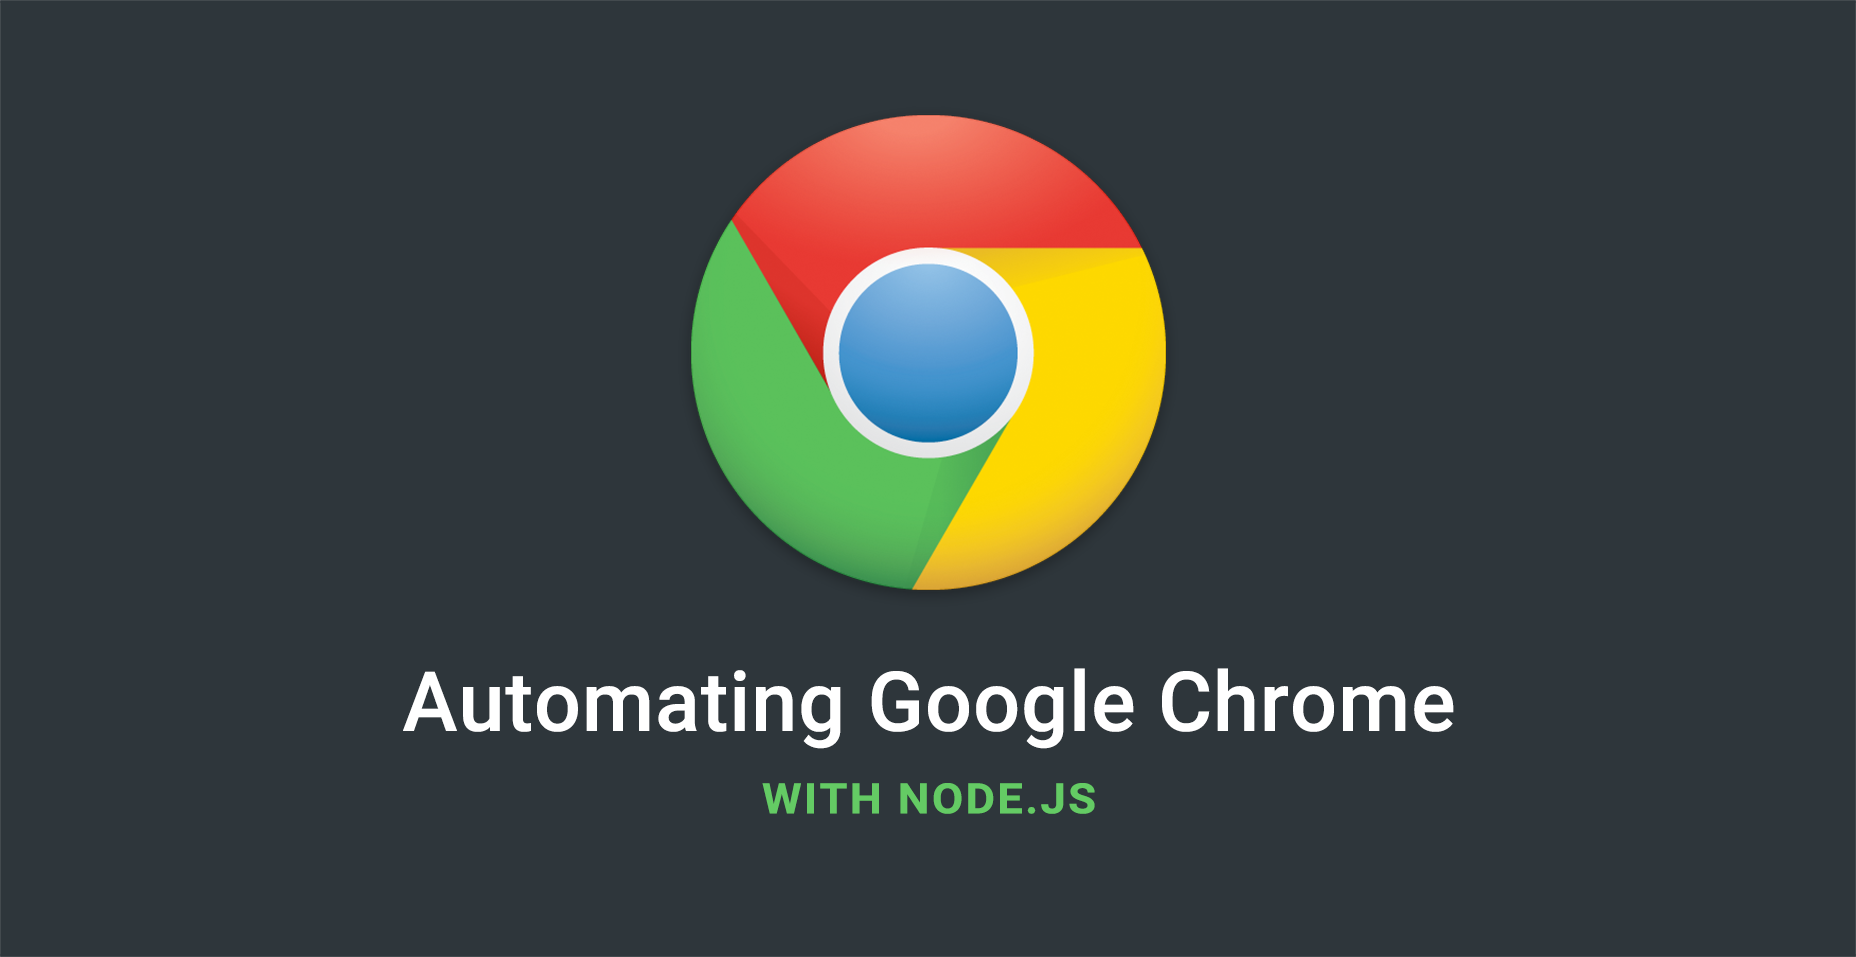 Automating Google Chrome with Node js - Tutorialzine